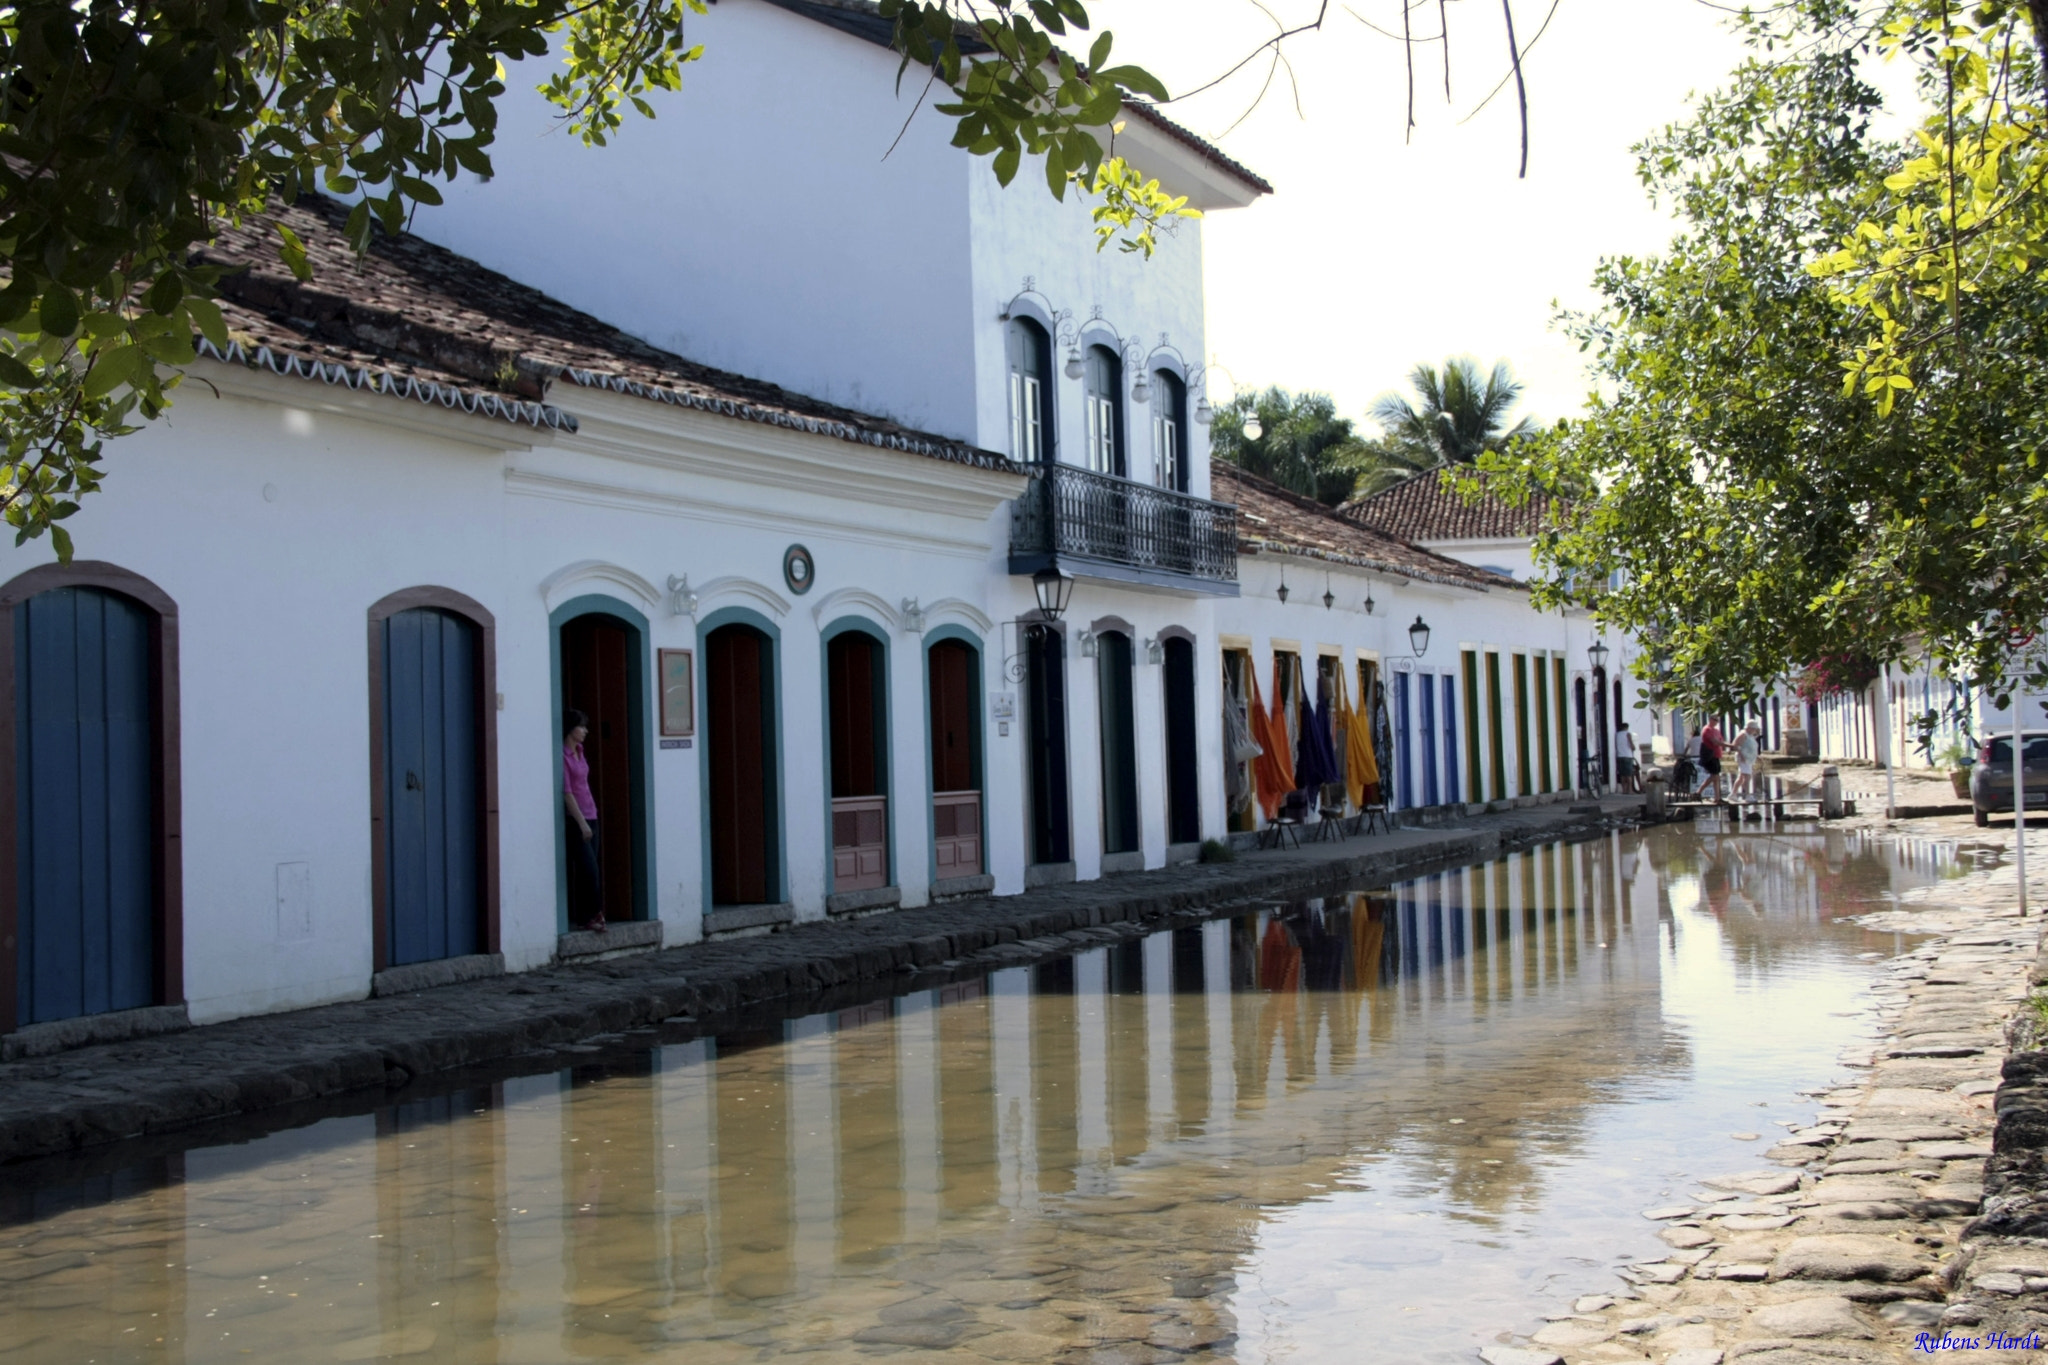 Photograph Paraty in high tide by Rubens Hardt on 500px